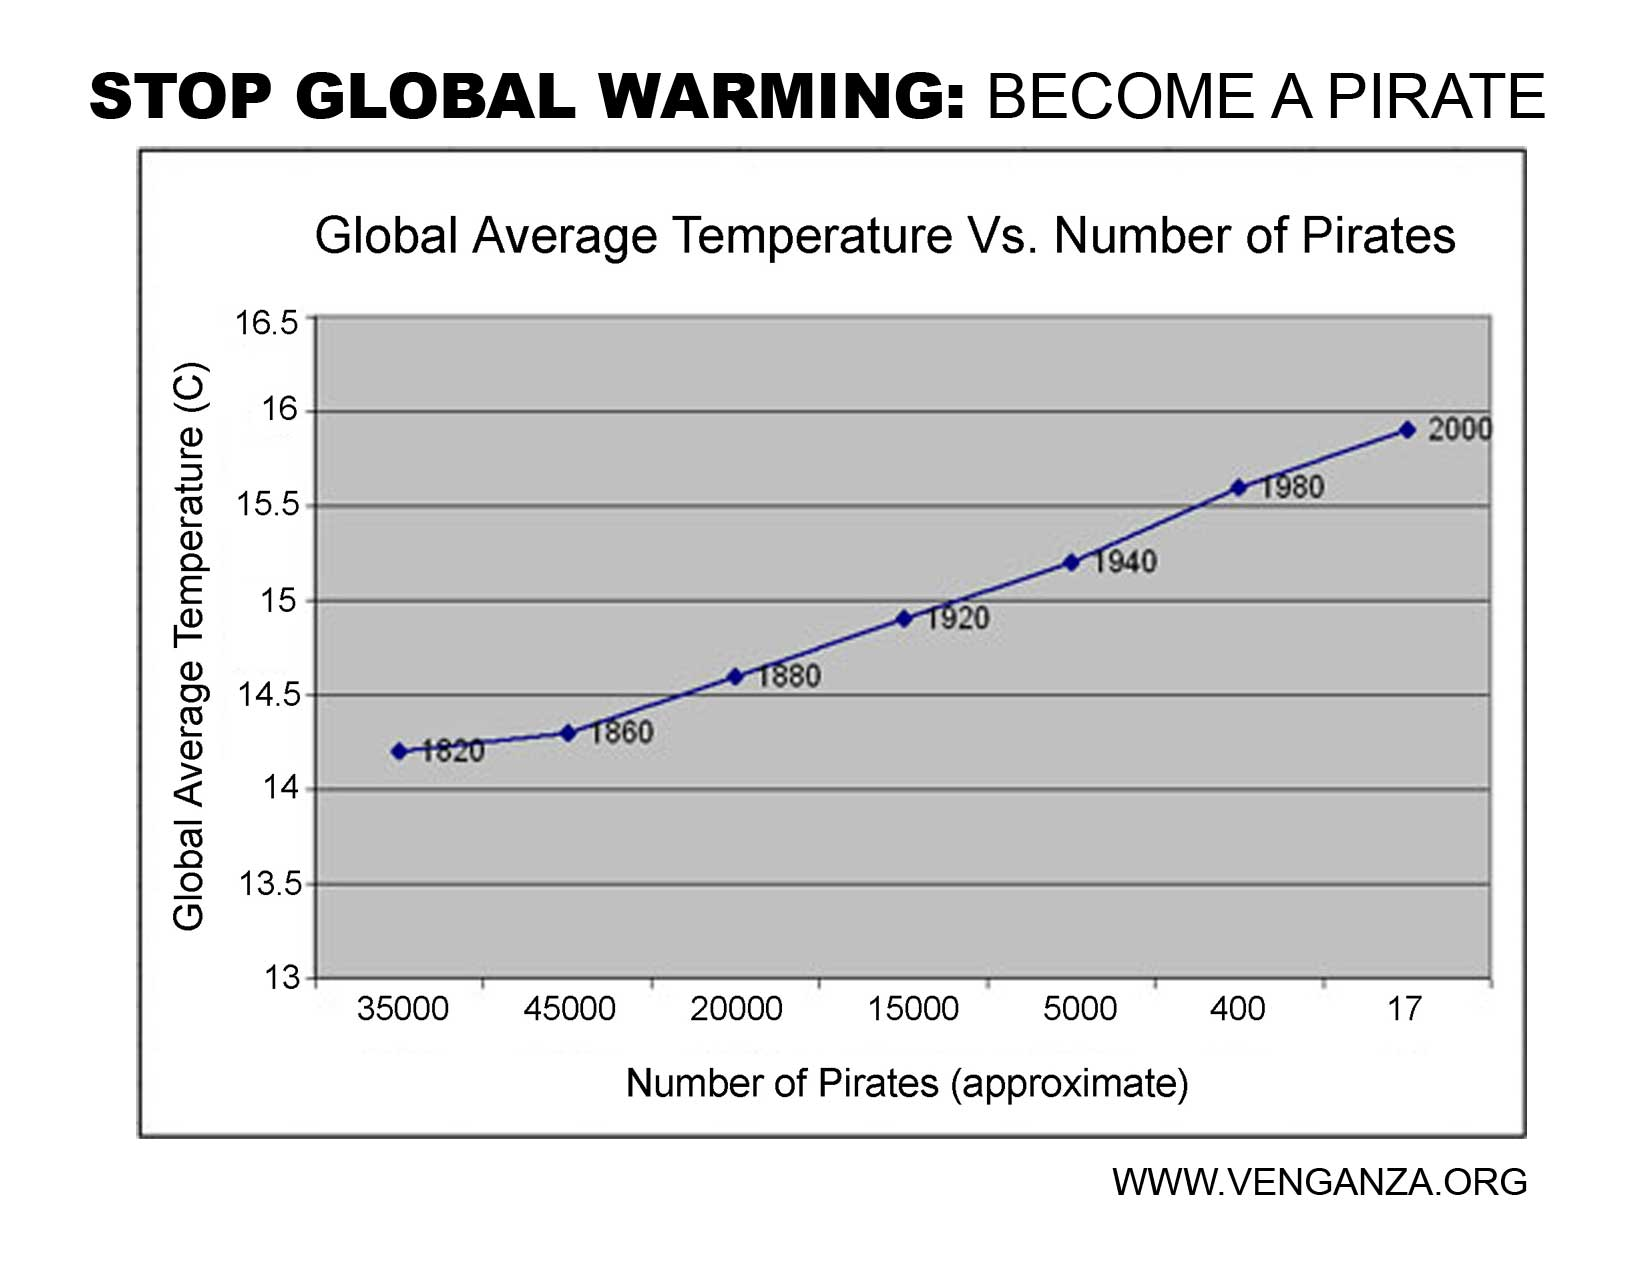 A worldwide reduction in the number of pirates has caused global warming.